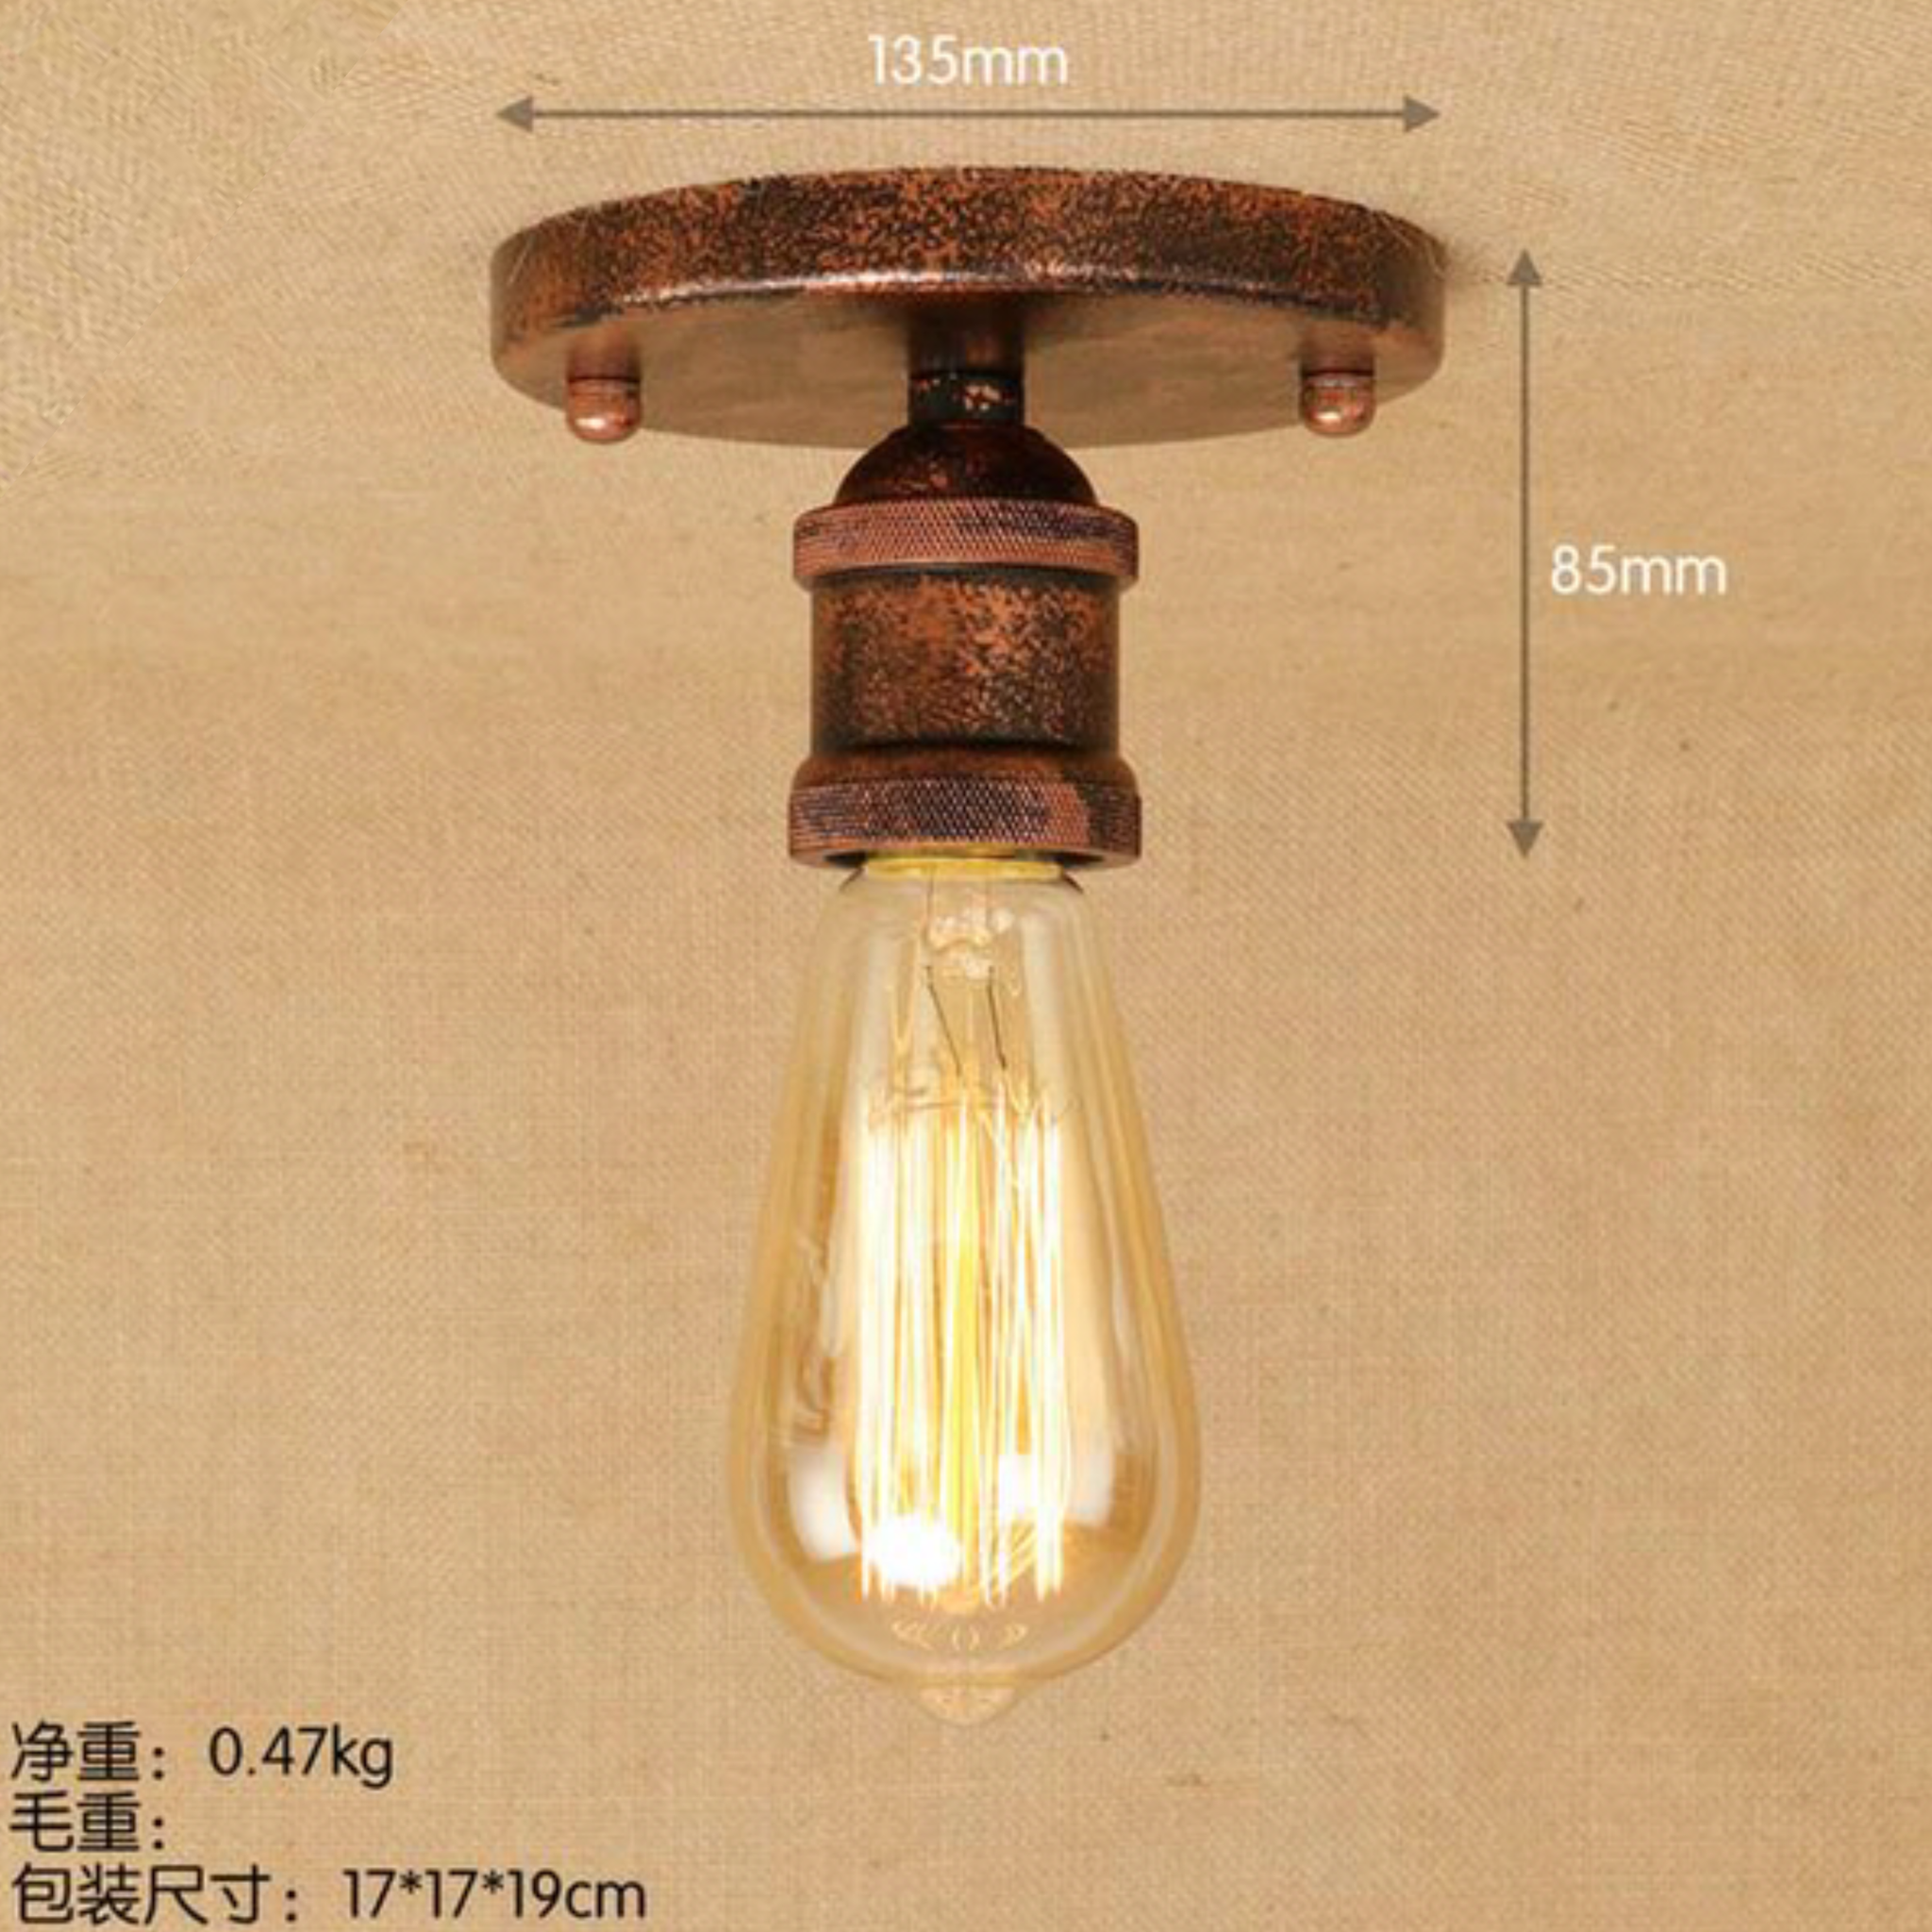 Vintage Brown Industrial Ceiling Lights Lamparas De Techo Loft Style Retro Ceiling Lamp Fixtures Home Lighting Avize Luminaire